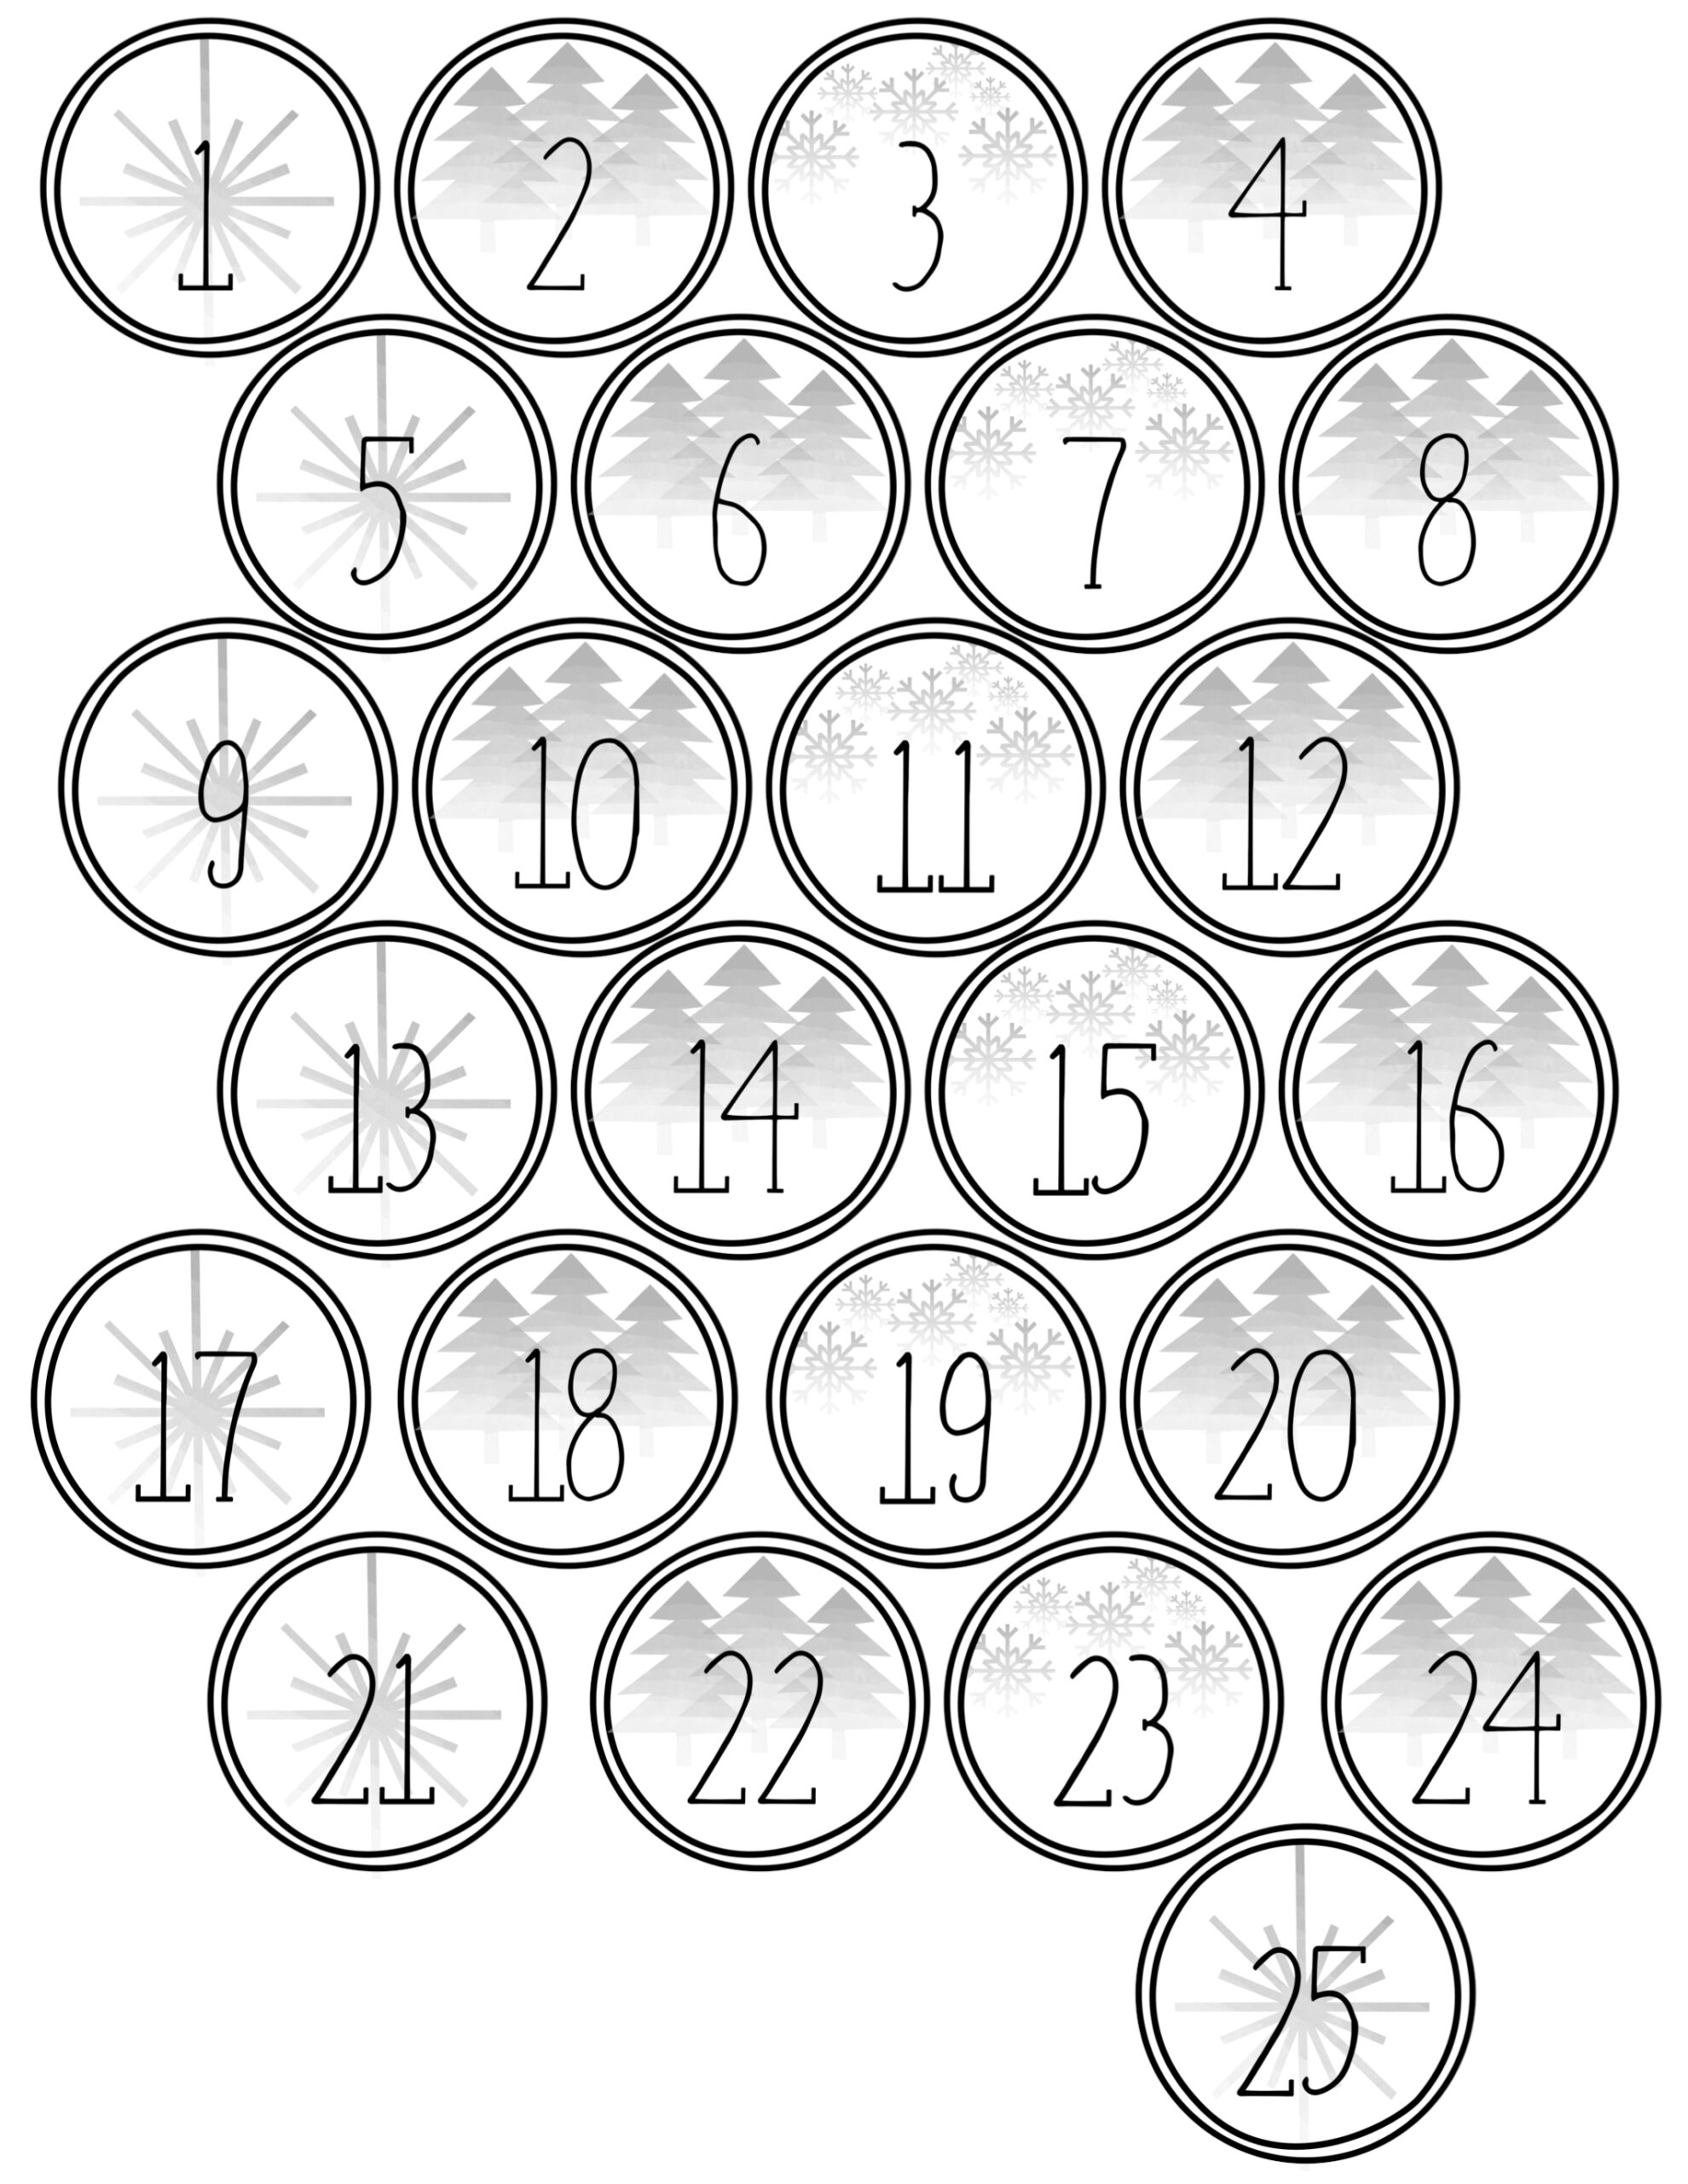 image regarding Advent Calendar Numbers Printable named Xmas Arrival Calendar Printable Quantities - Paper Path Structure